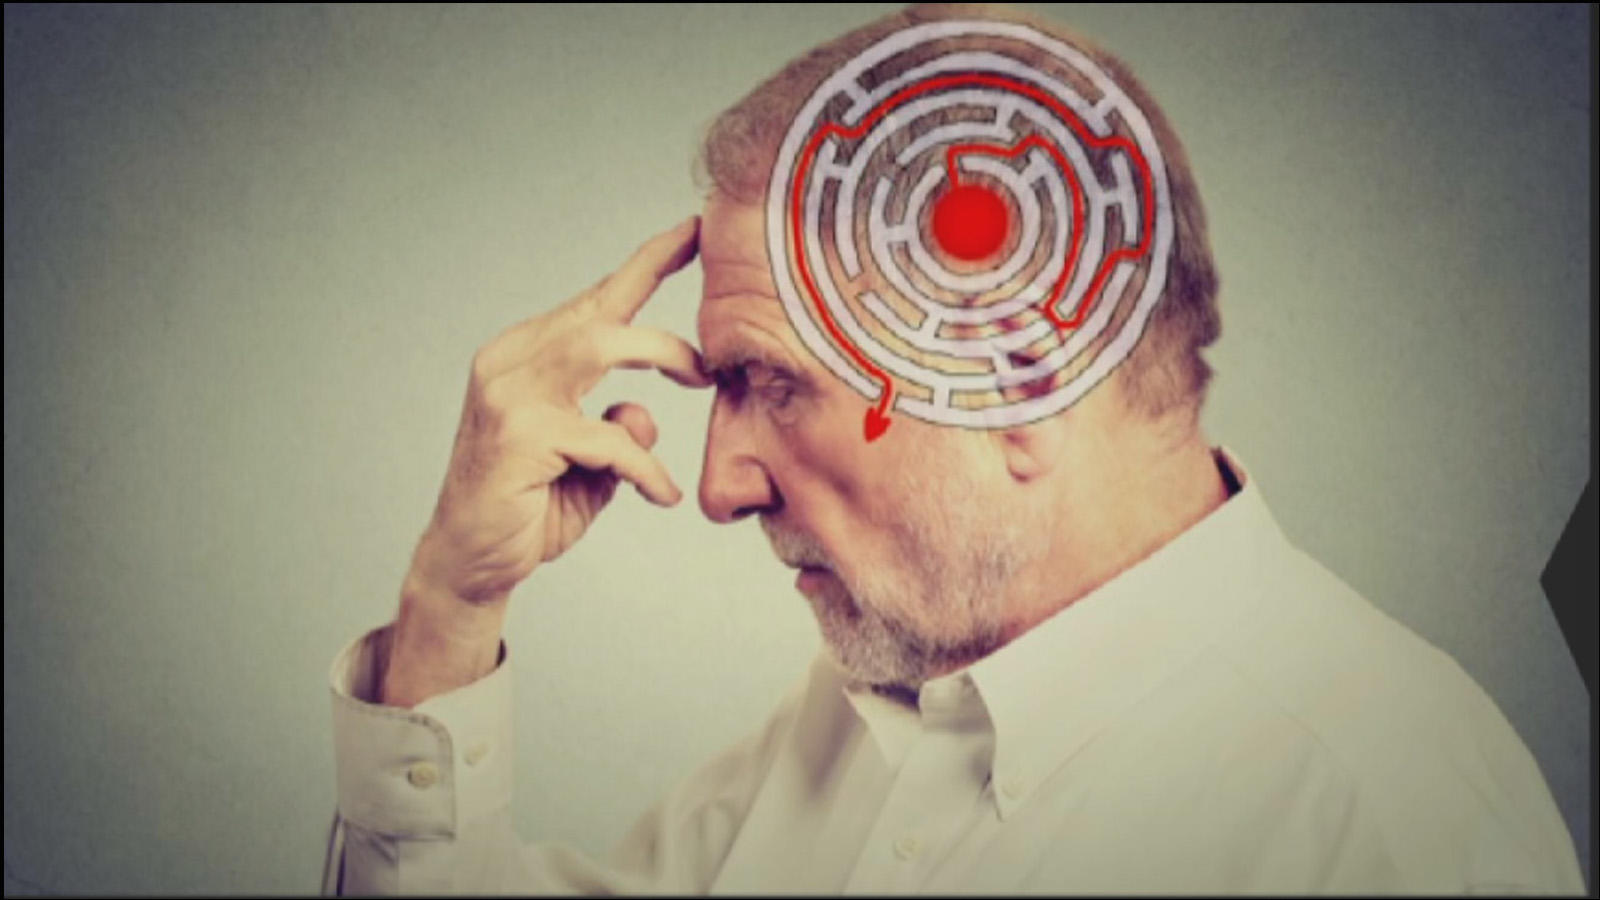 silent-strokes-common-in-older-patients-study